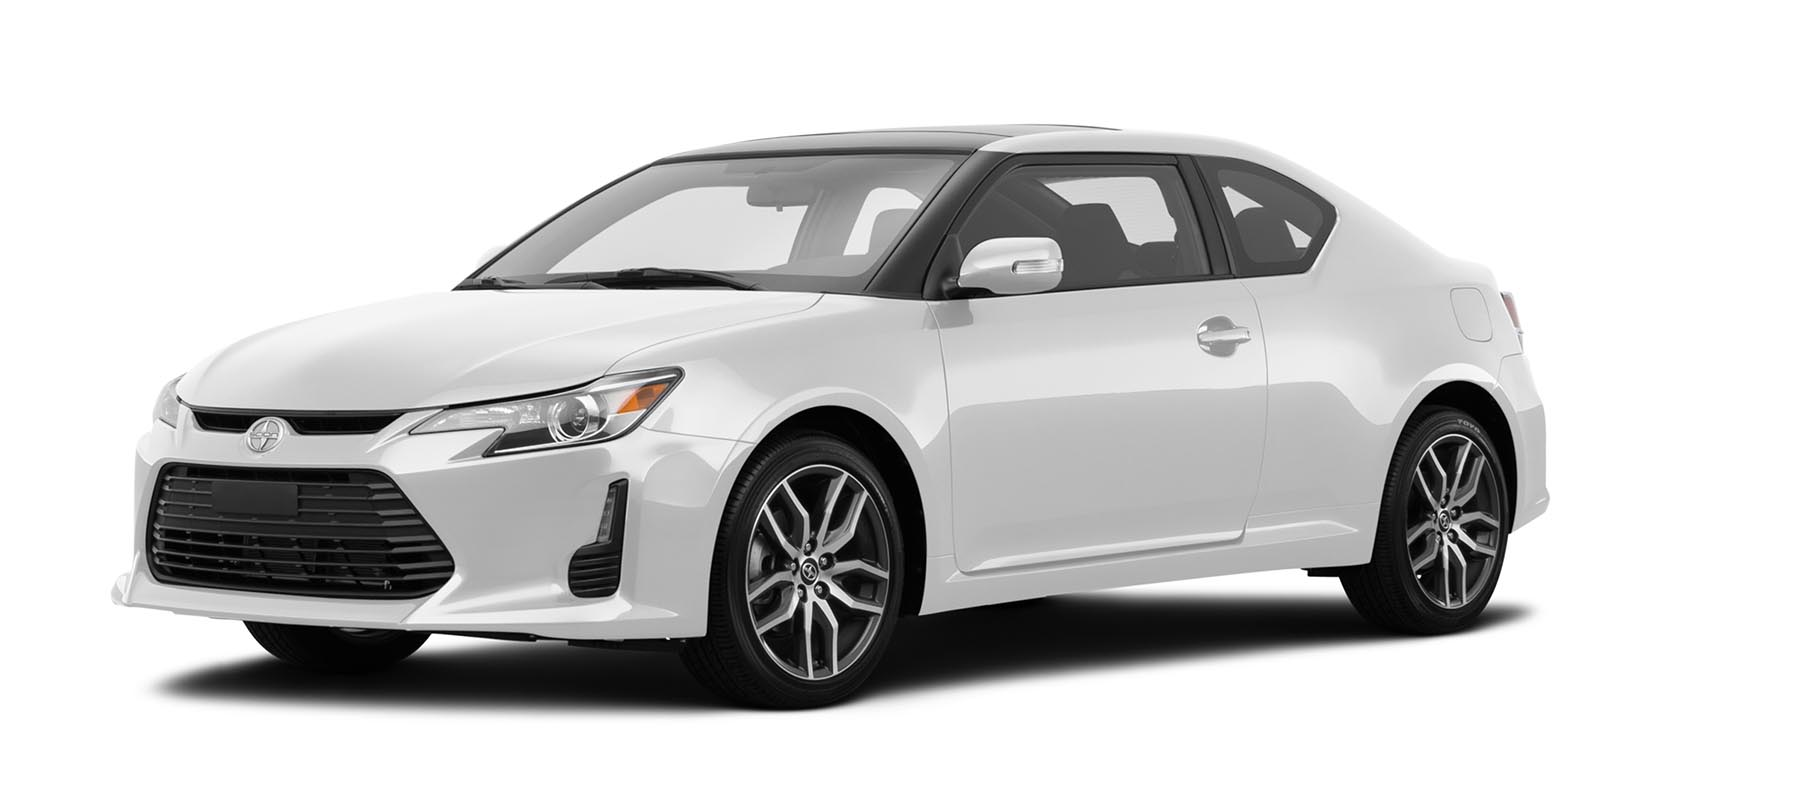 Scion service in Phoenix, Arizona delivered at your home or office